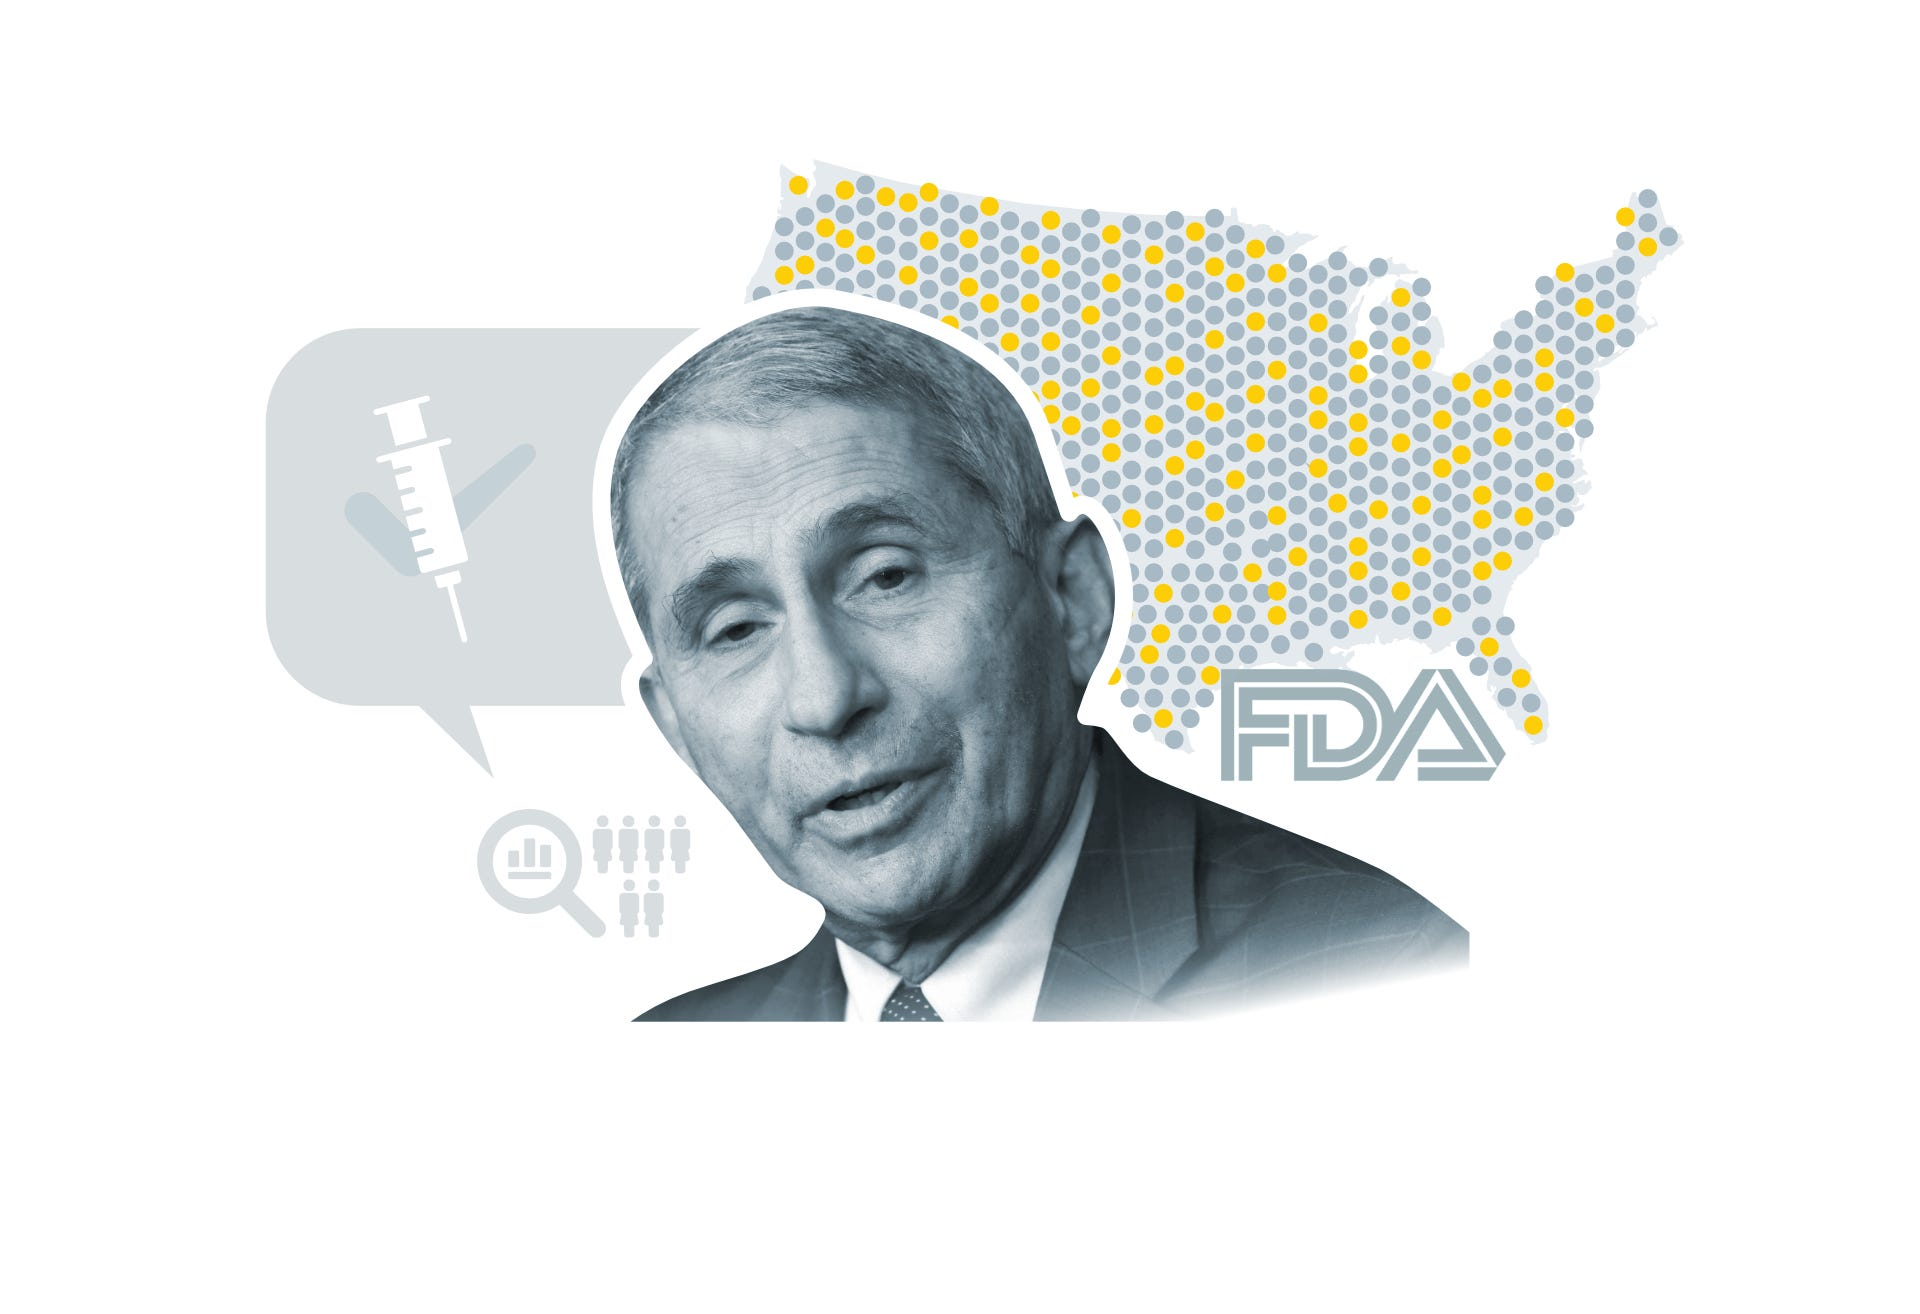 In Dr. Fauci s words: Why Americans shouldn t fear a COVID-19 vaccine authorized by the FDA